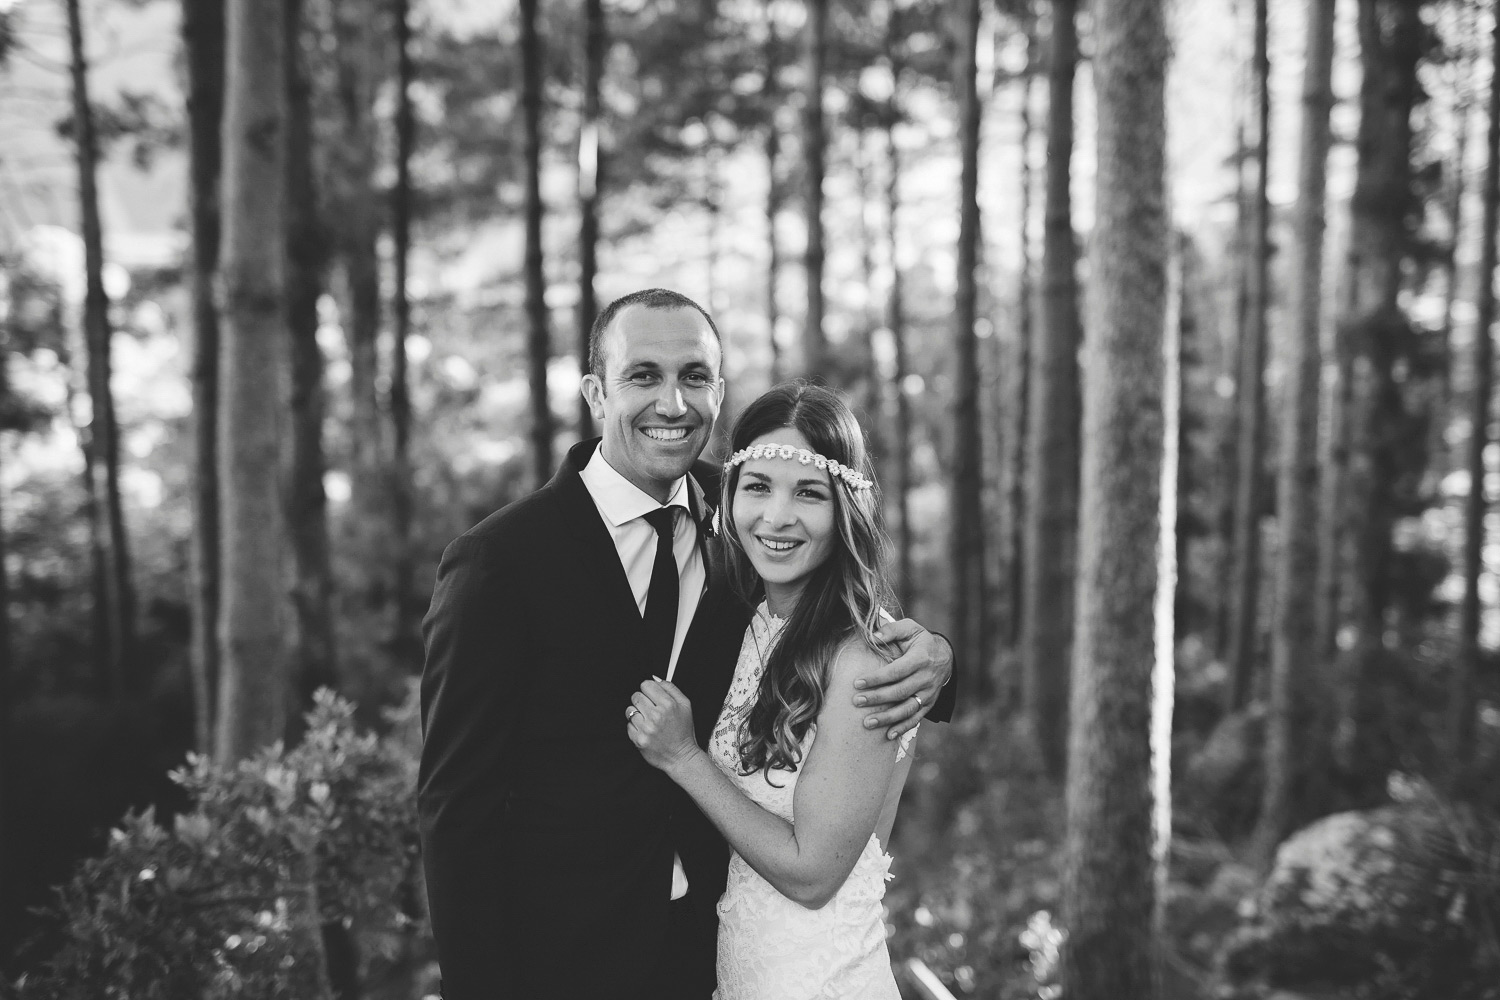 cape-town-wedding-photographer-western-cape-constansia-camilla-charlie-ray77.jpg